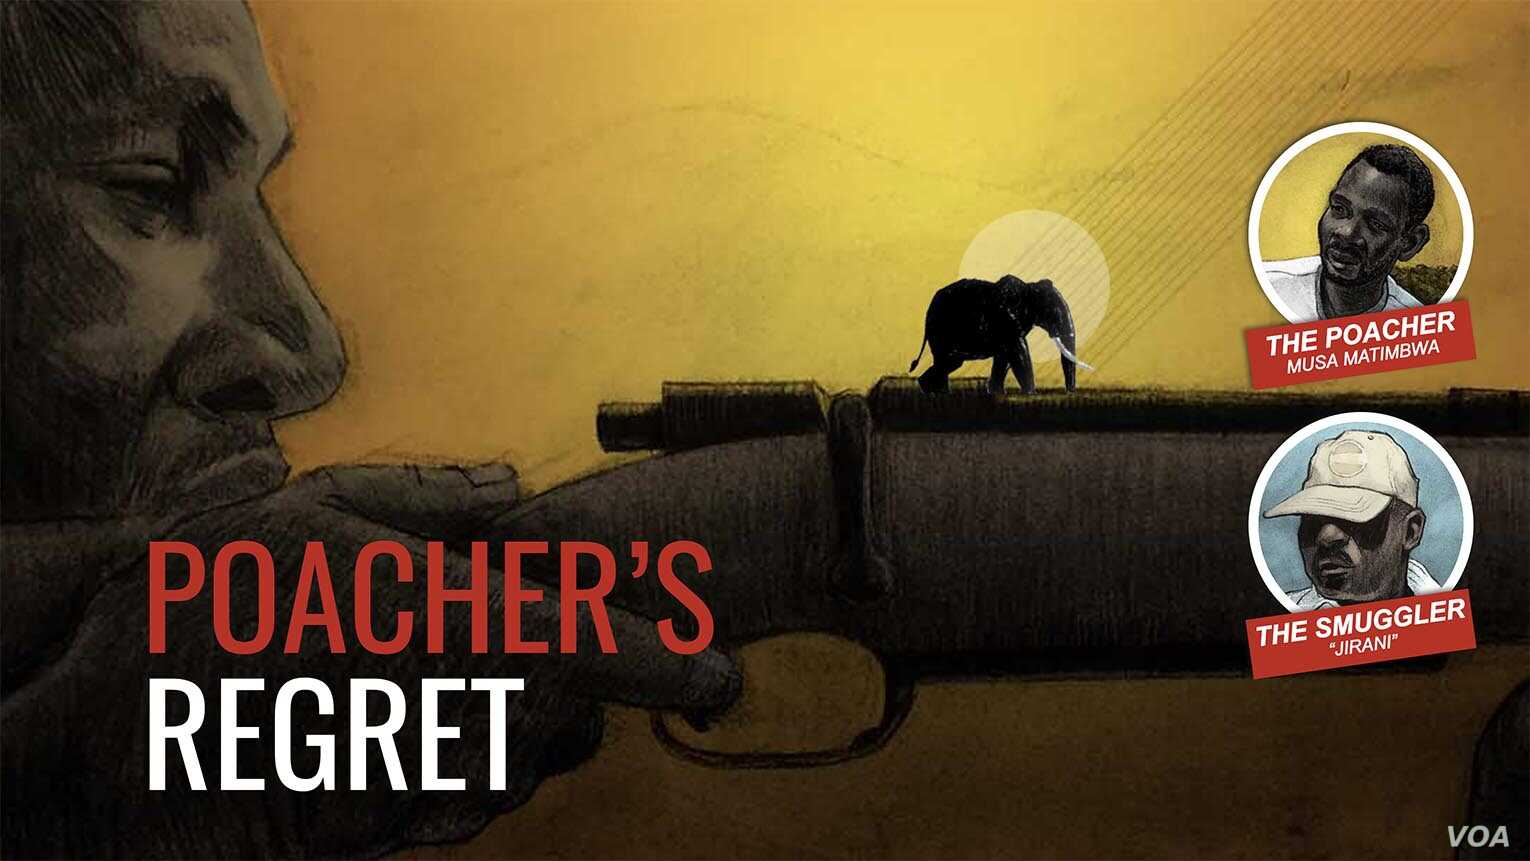 Poaching project: Poacher's regret poster image (alternative)